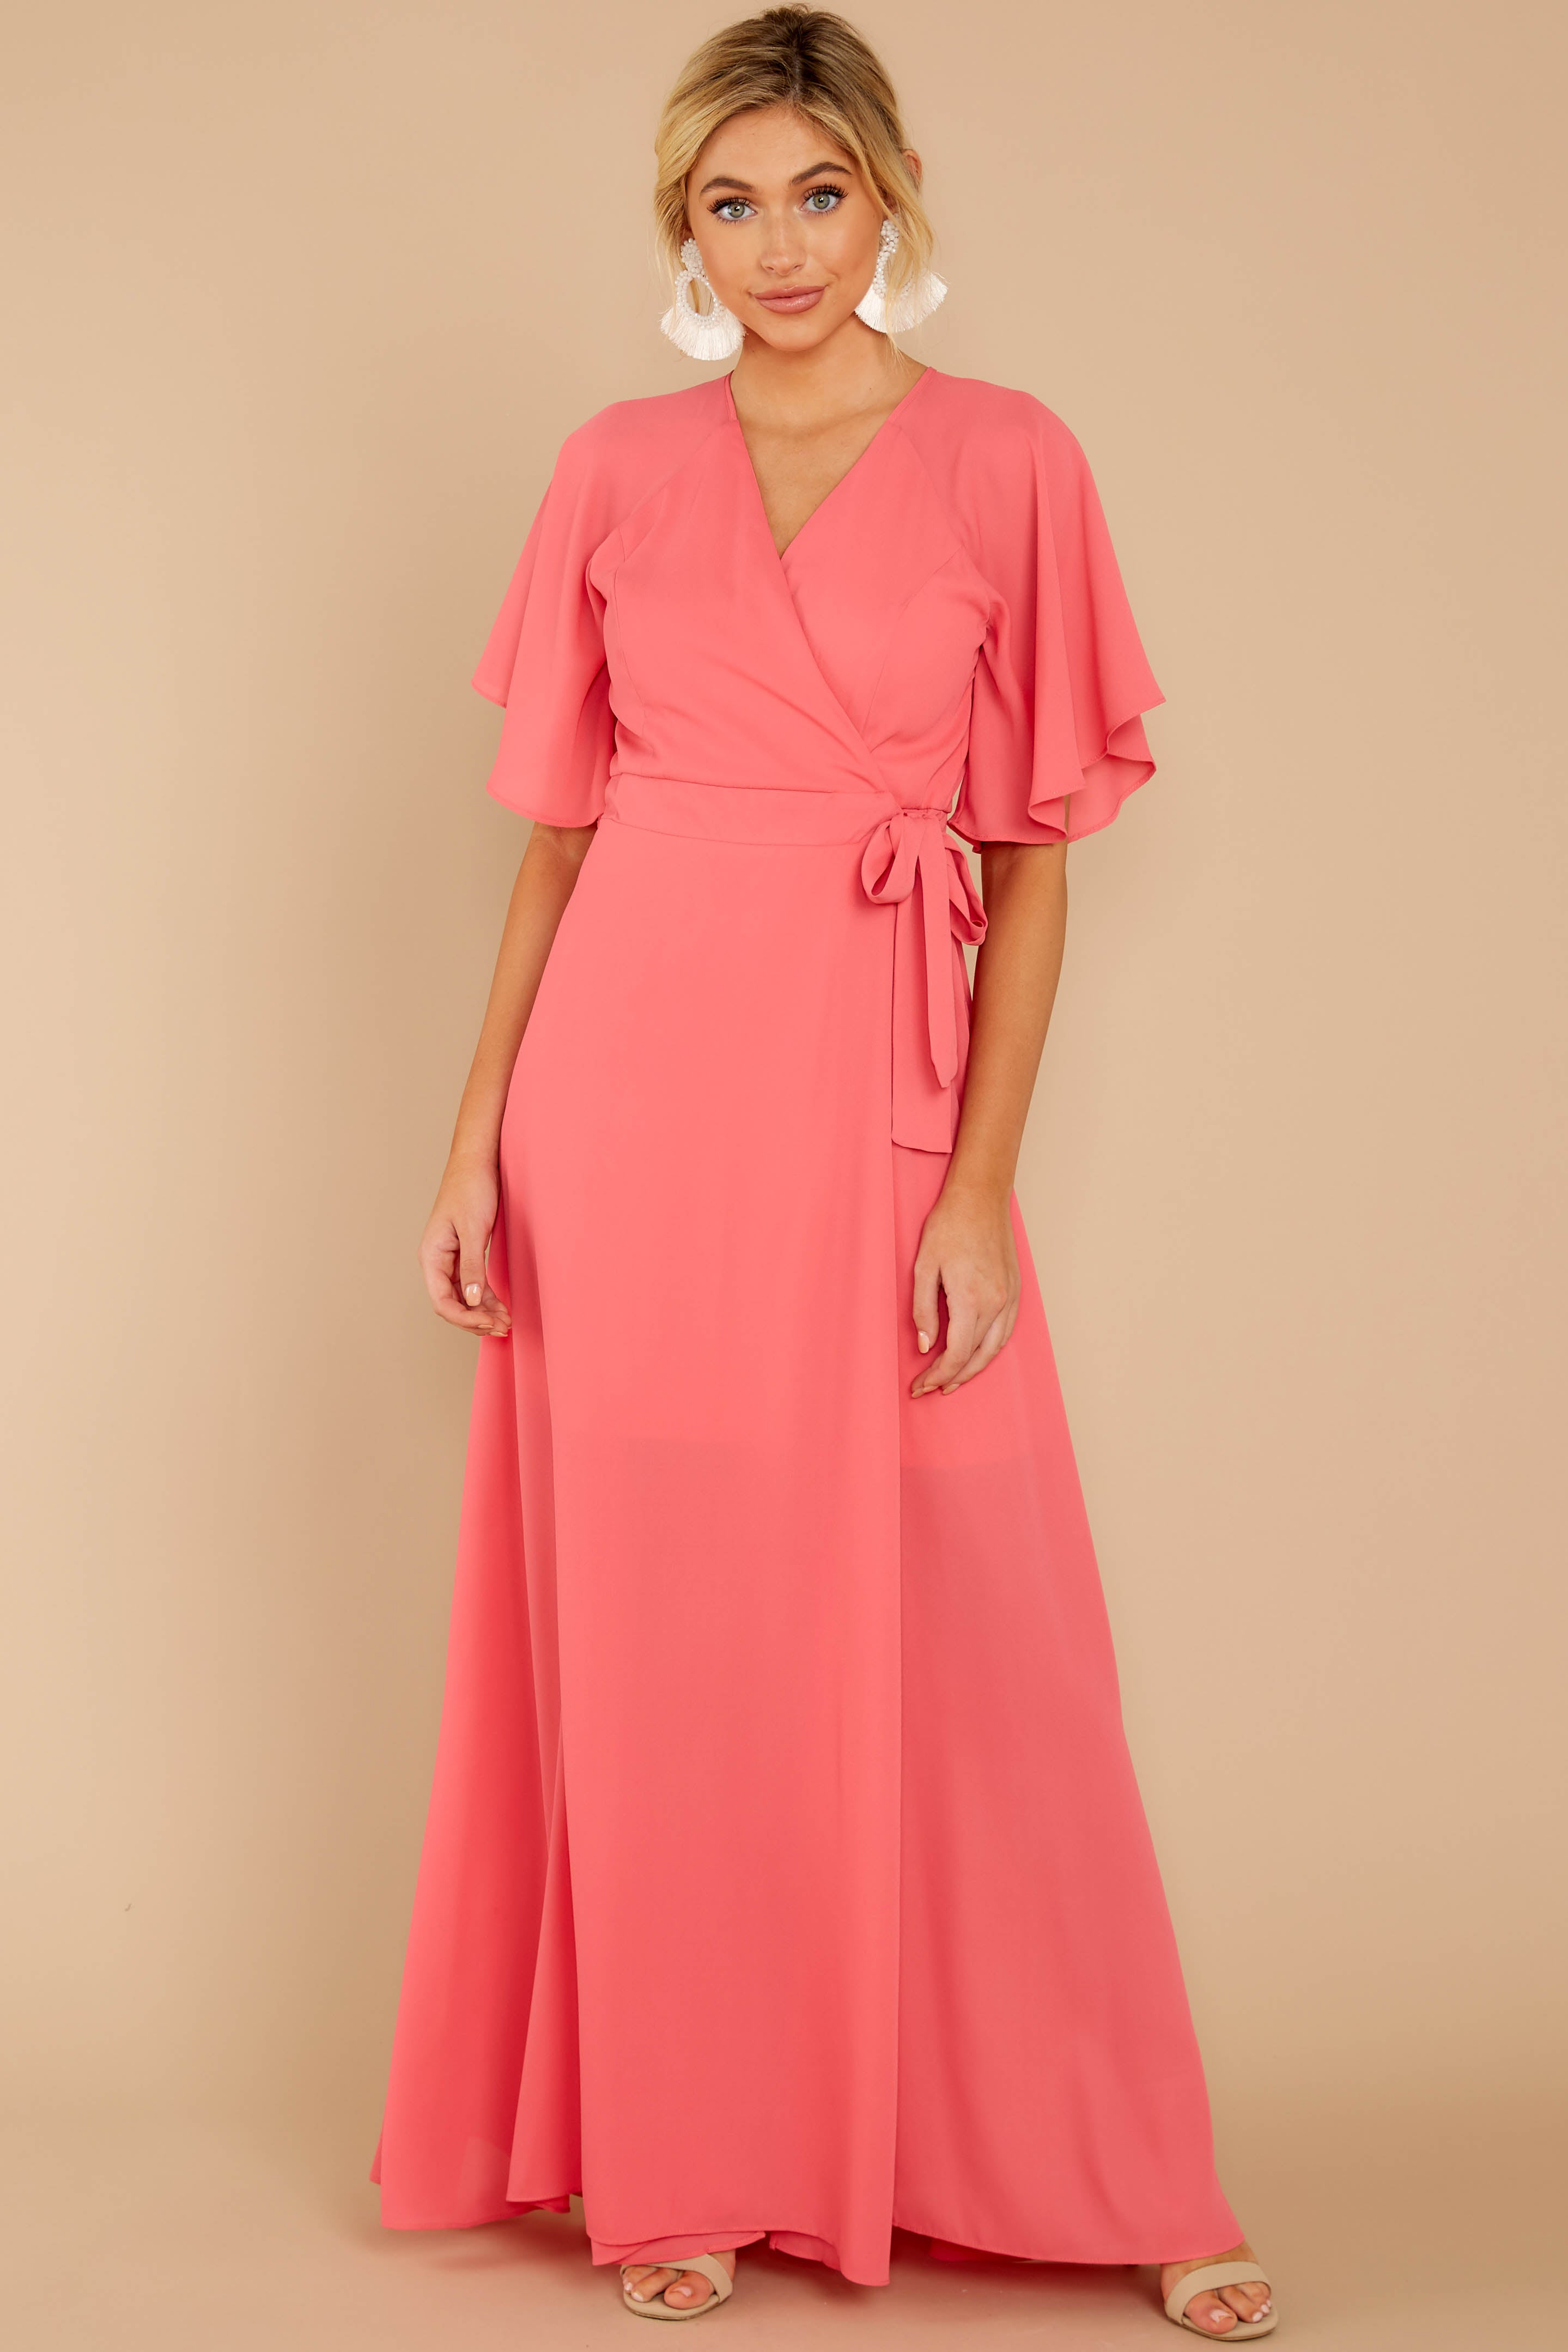 3 Wrapped In Elegance Flamingo Pink Maxi Dress at reddress.com